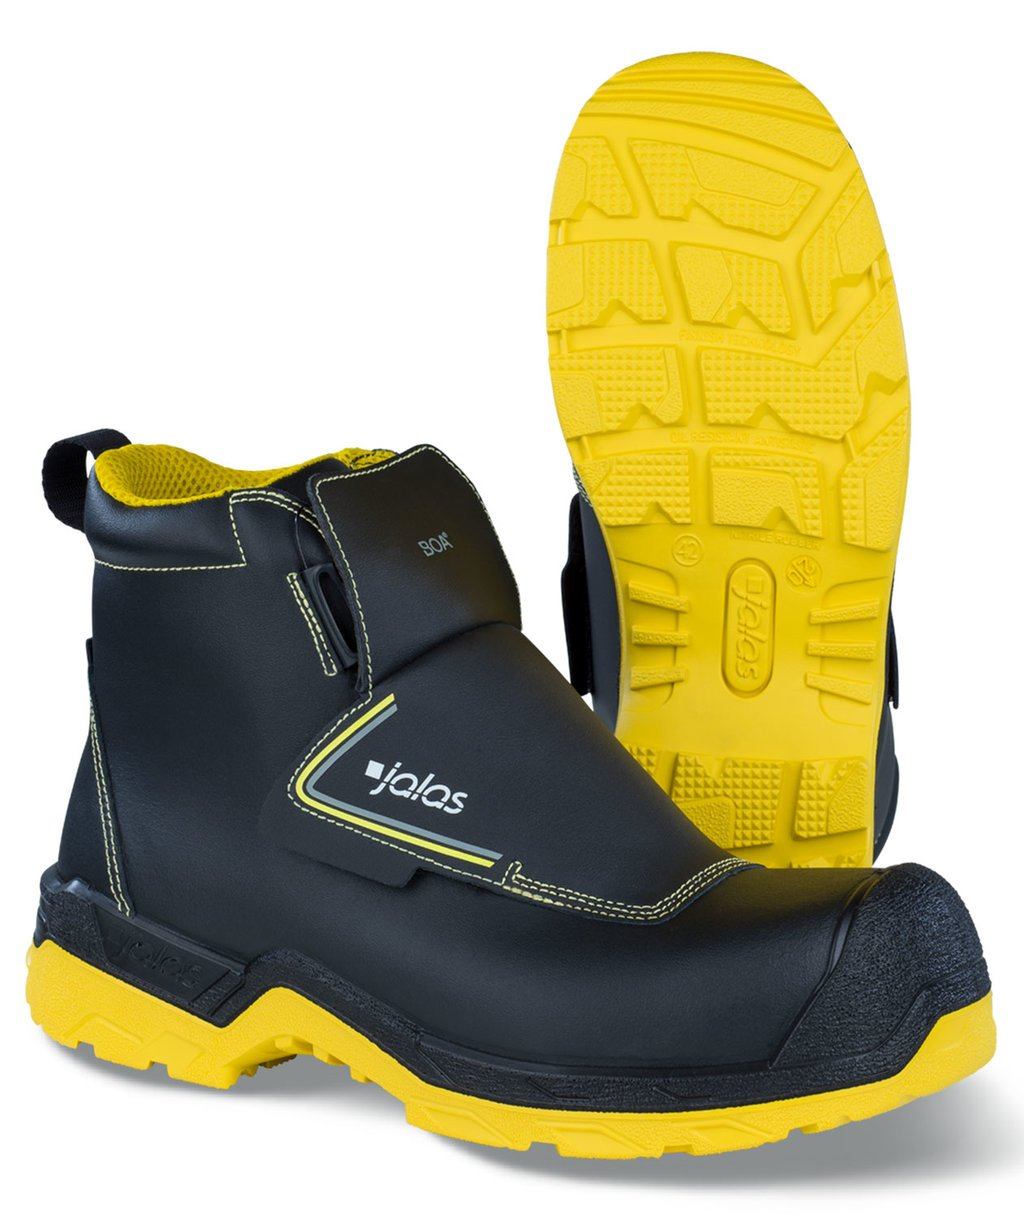 Jalas 1228W safety bootees S3, Black/Yellow